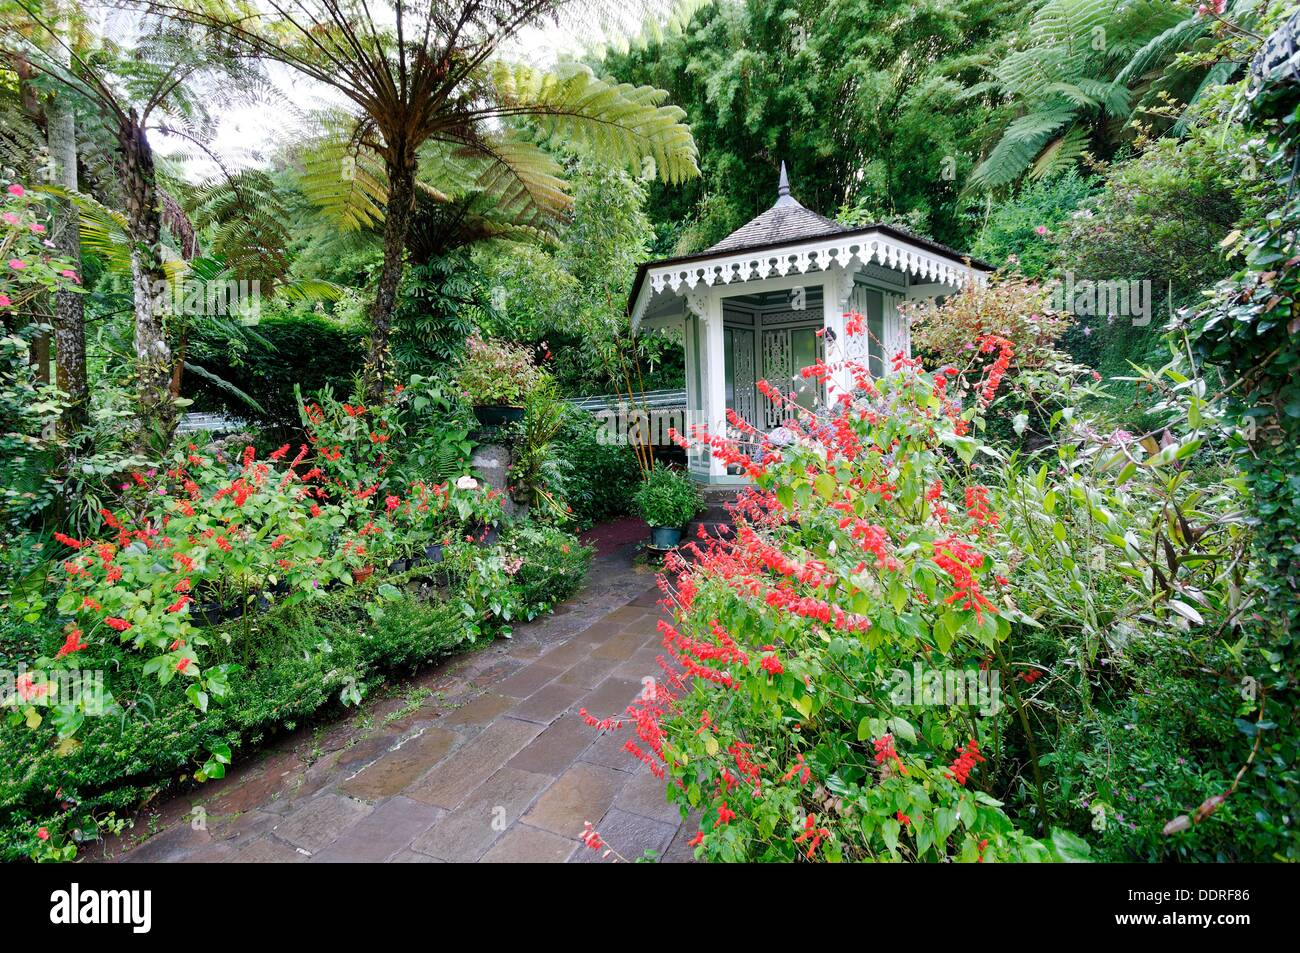 Exceptional Folio´s House Traditional Creole House And Garden, Hell Bourg Village,  Cirque De Salazie, Reunion Island, France